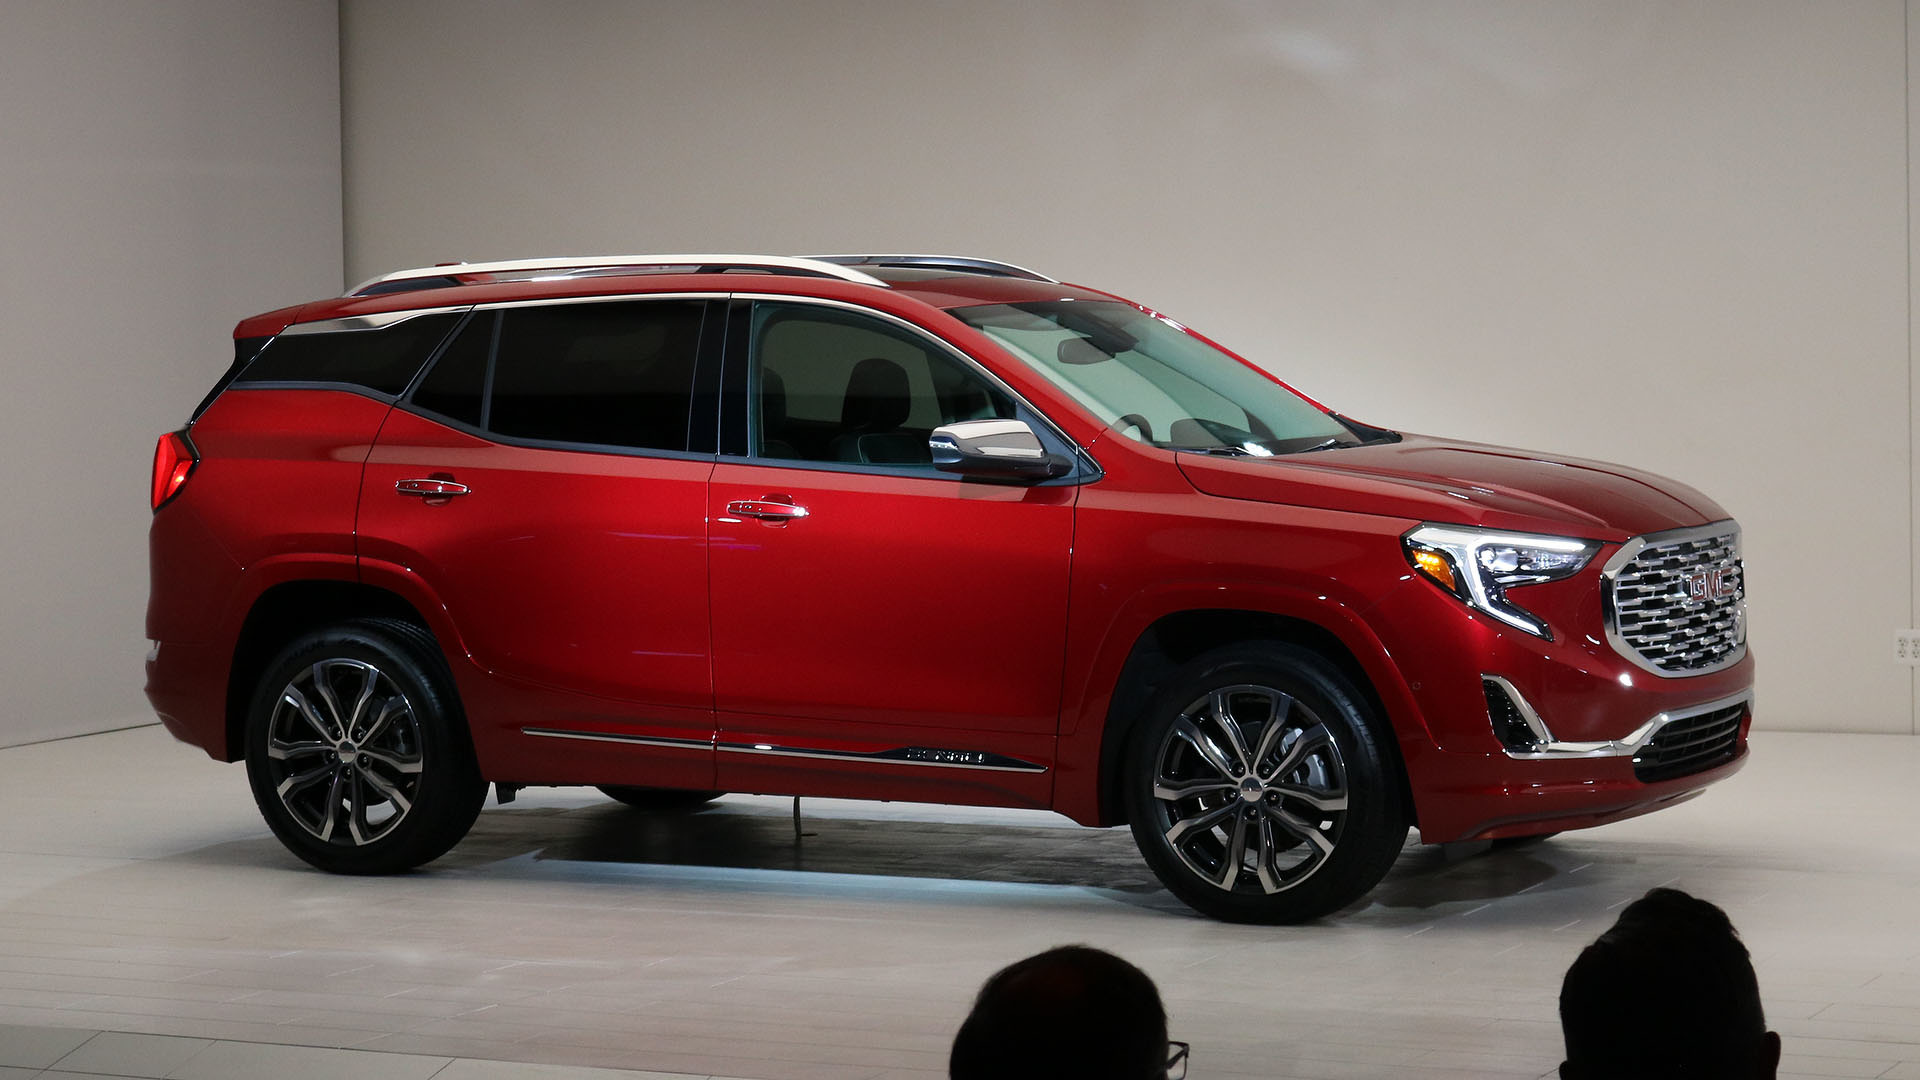 Gmc Terrain Amos >> The Gmc Terrain S Shifter Is Worst In Show At Detroit Updated